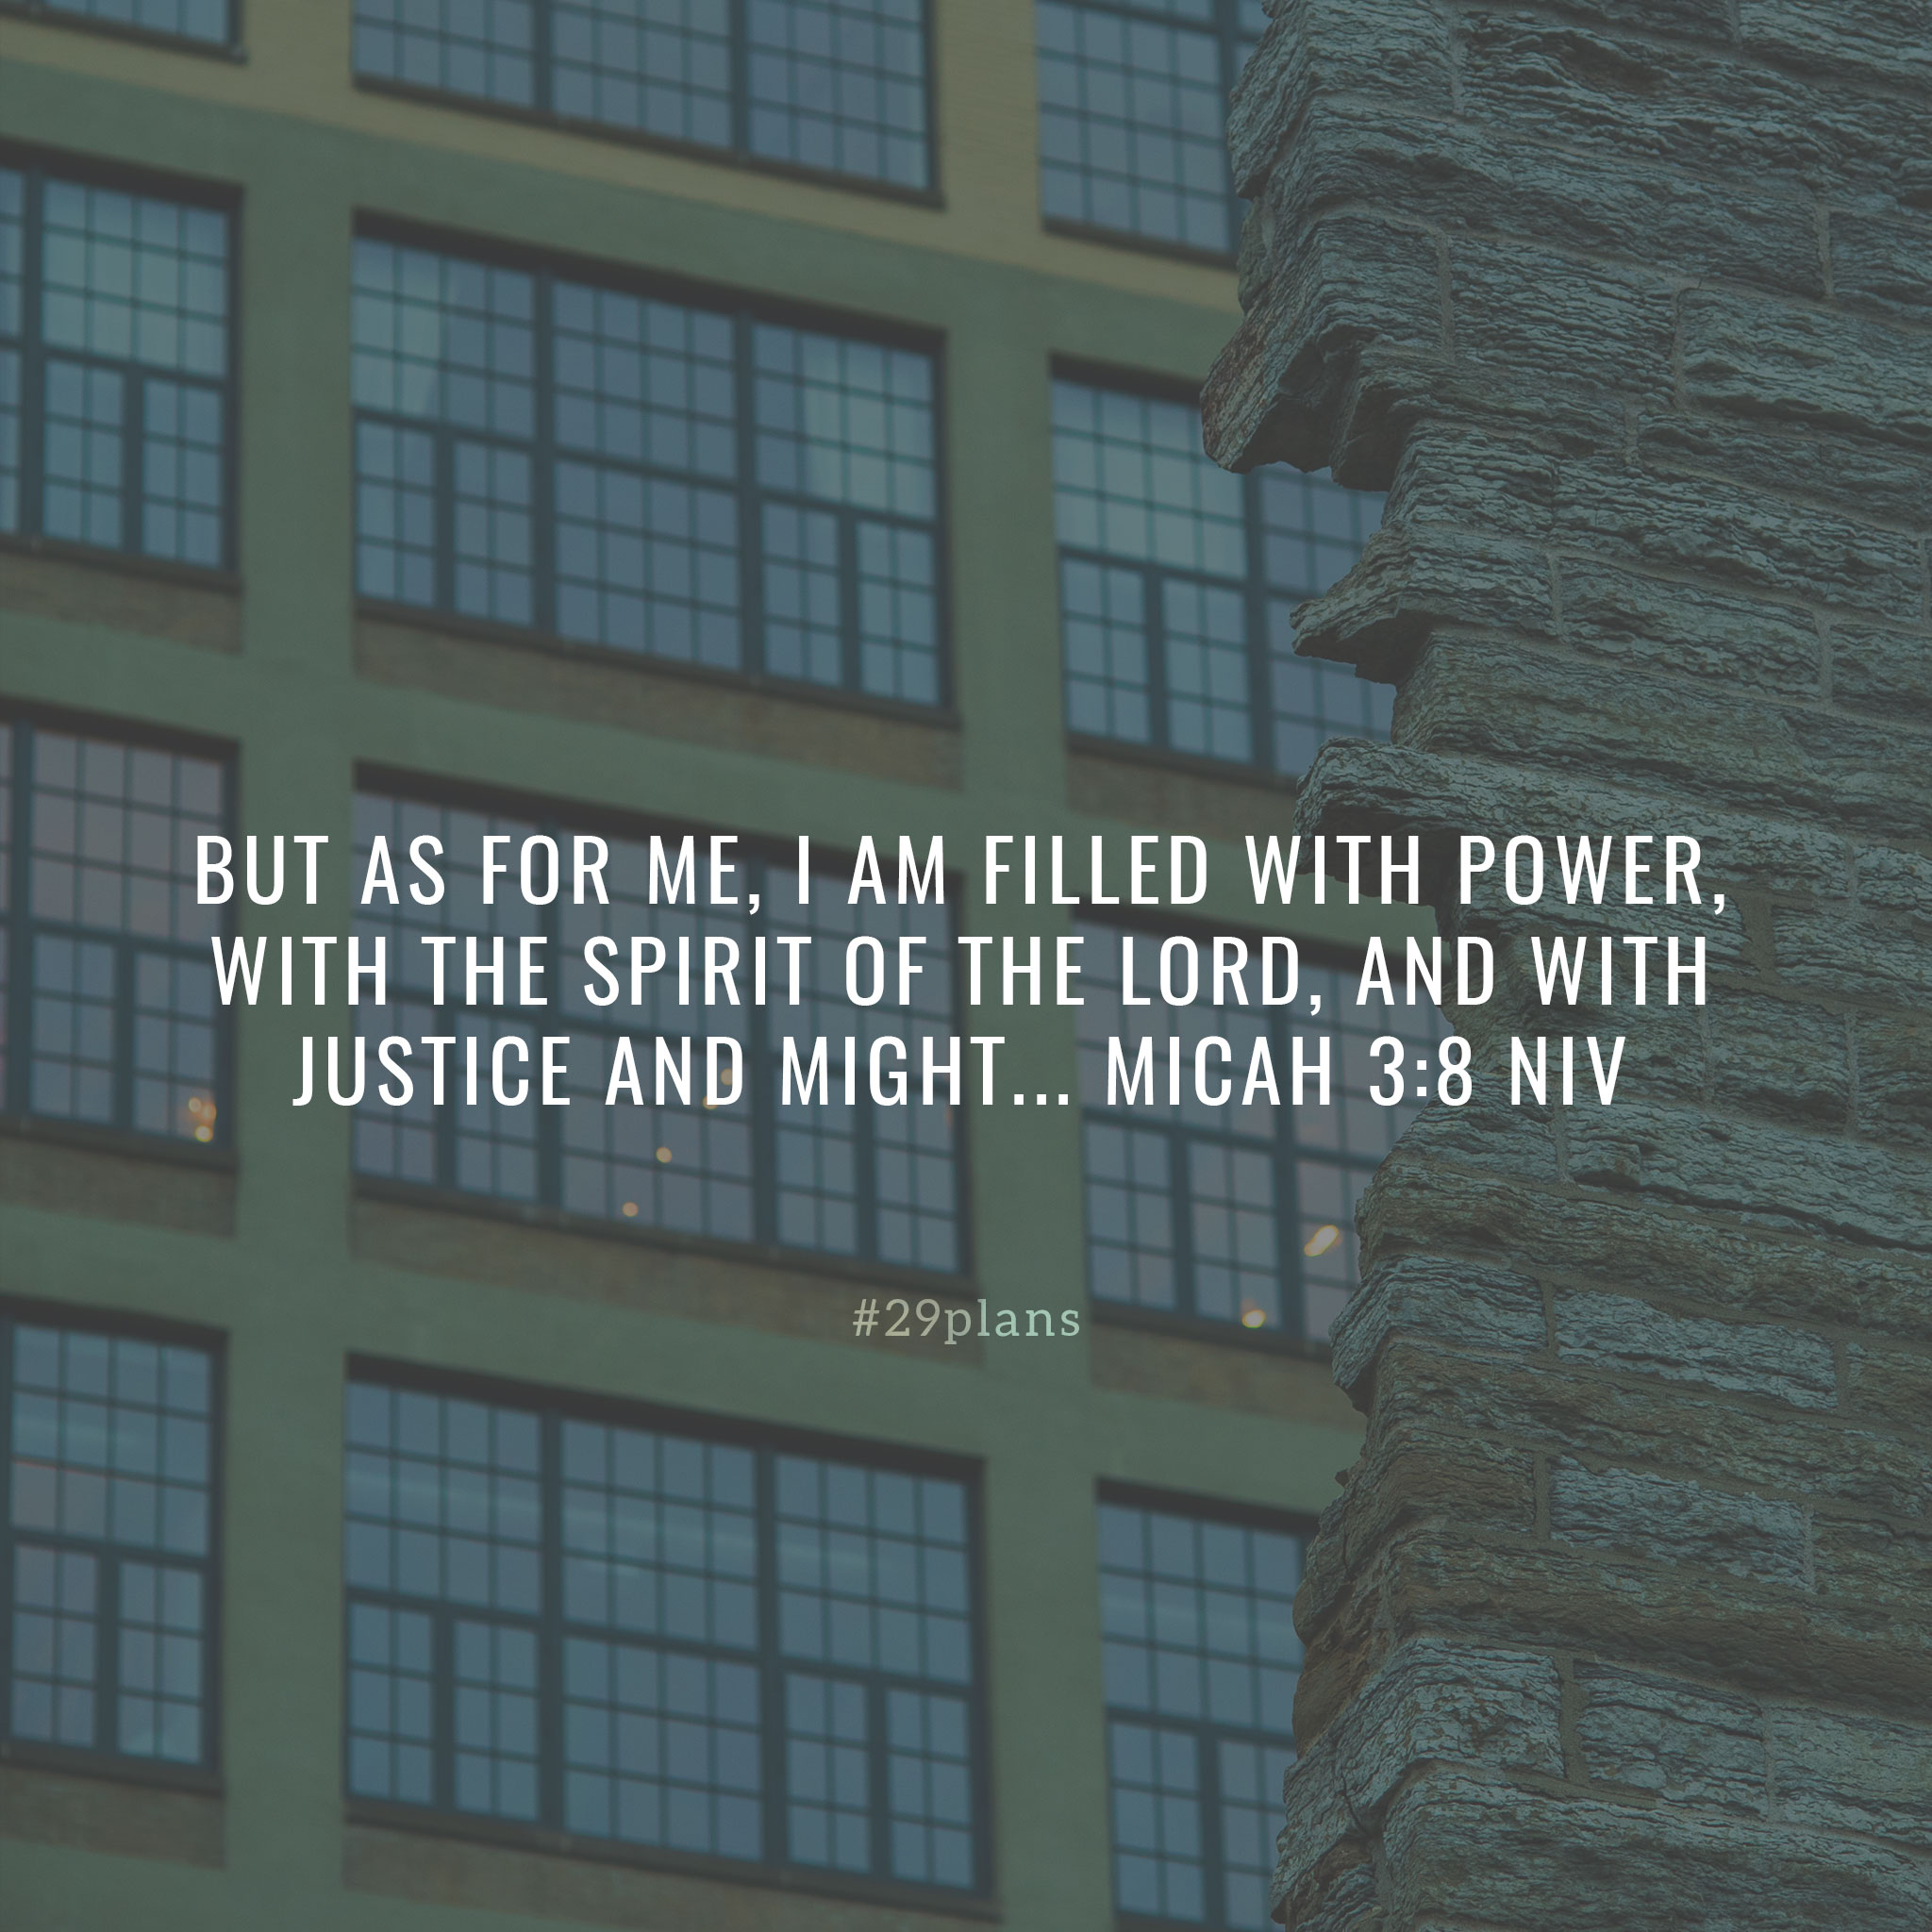 Today's Guide — 10.14.18 — Filled with the Spirit